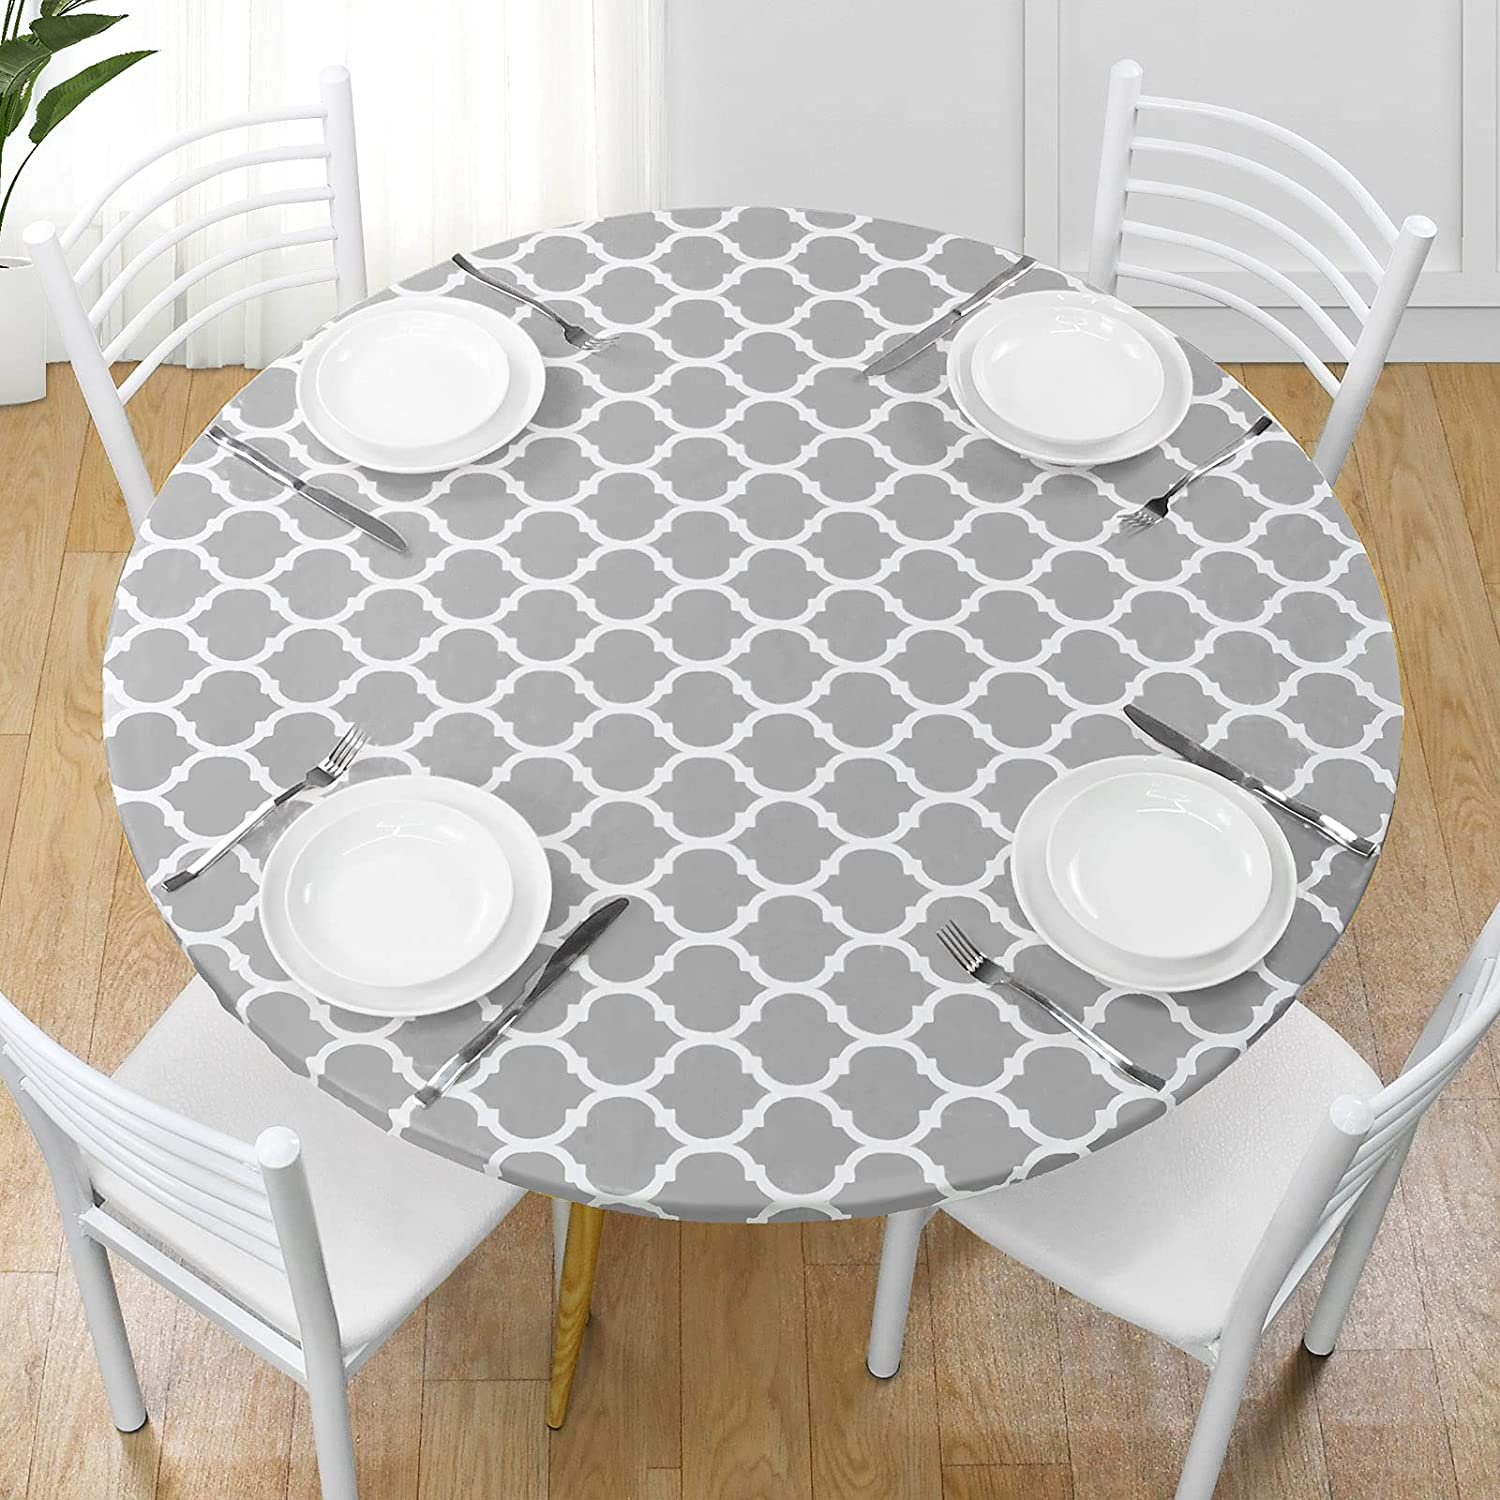 Yoochee Round Fitted Vinyl 2021 model Tablecloth Backing Our shop OFFers the best service Elast Flannel with